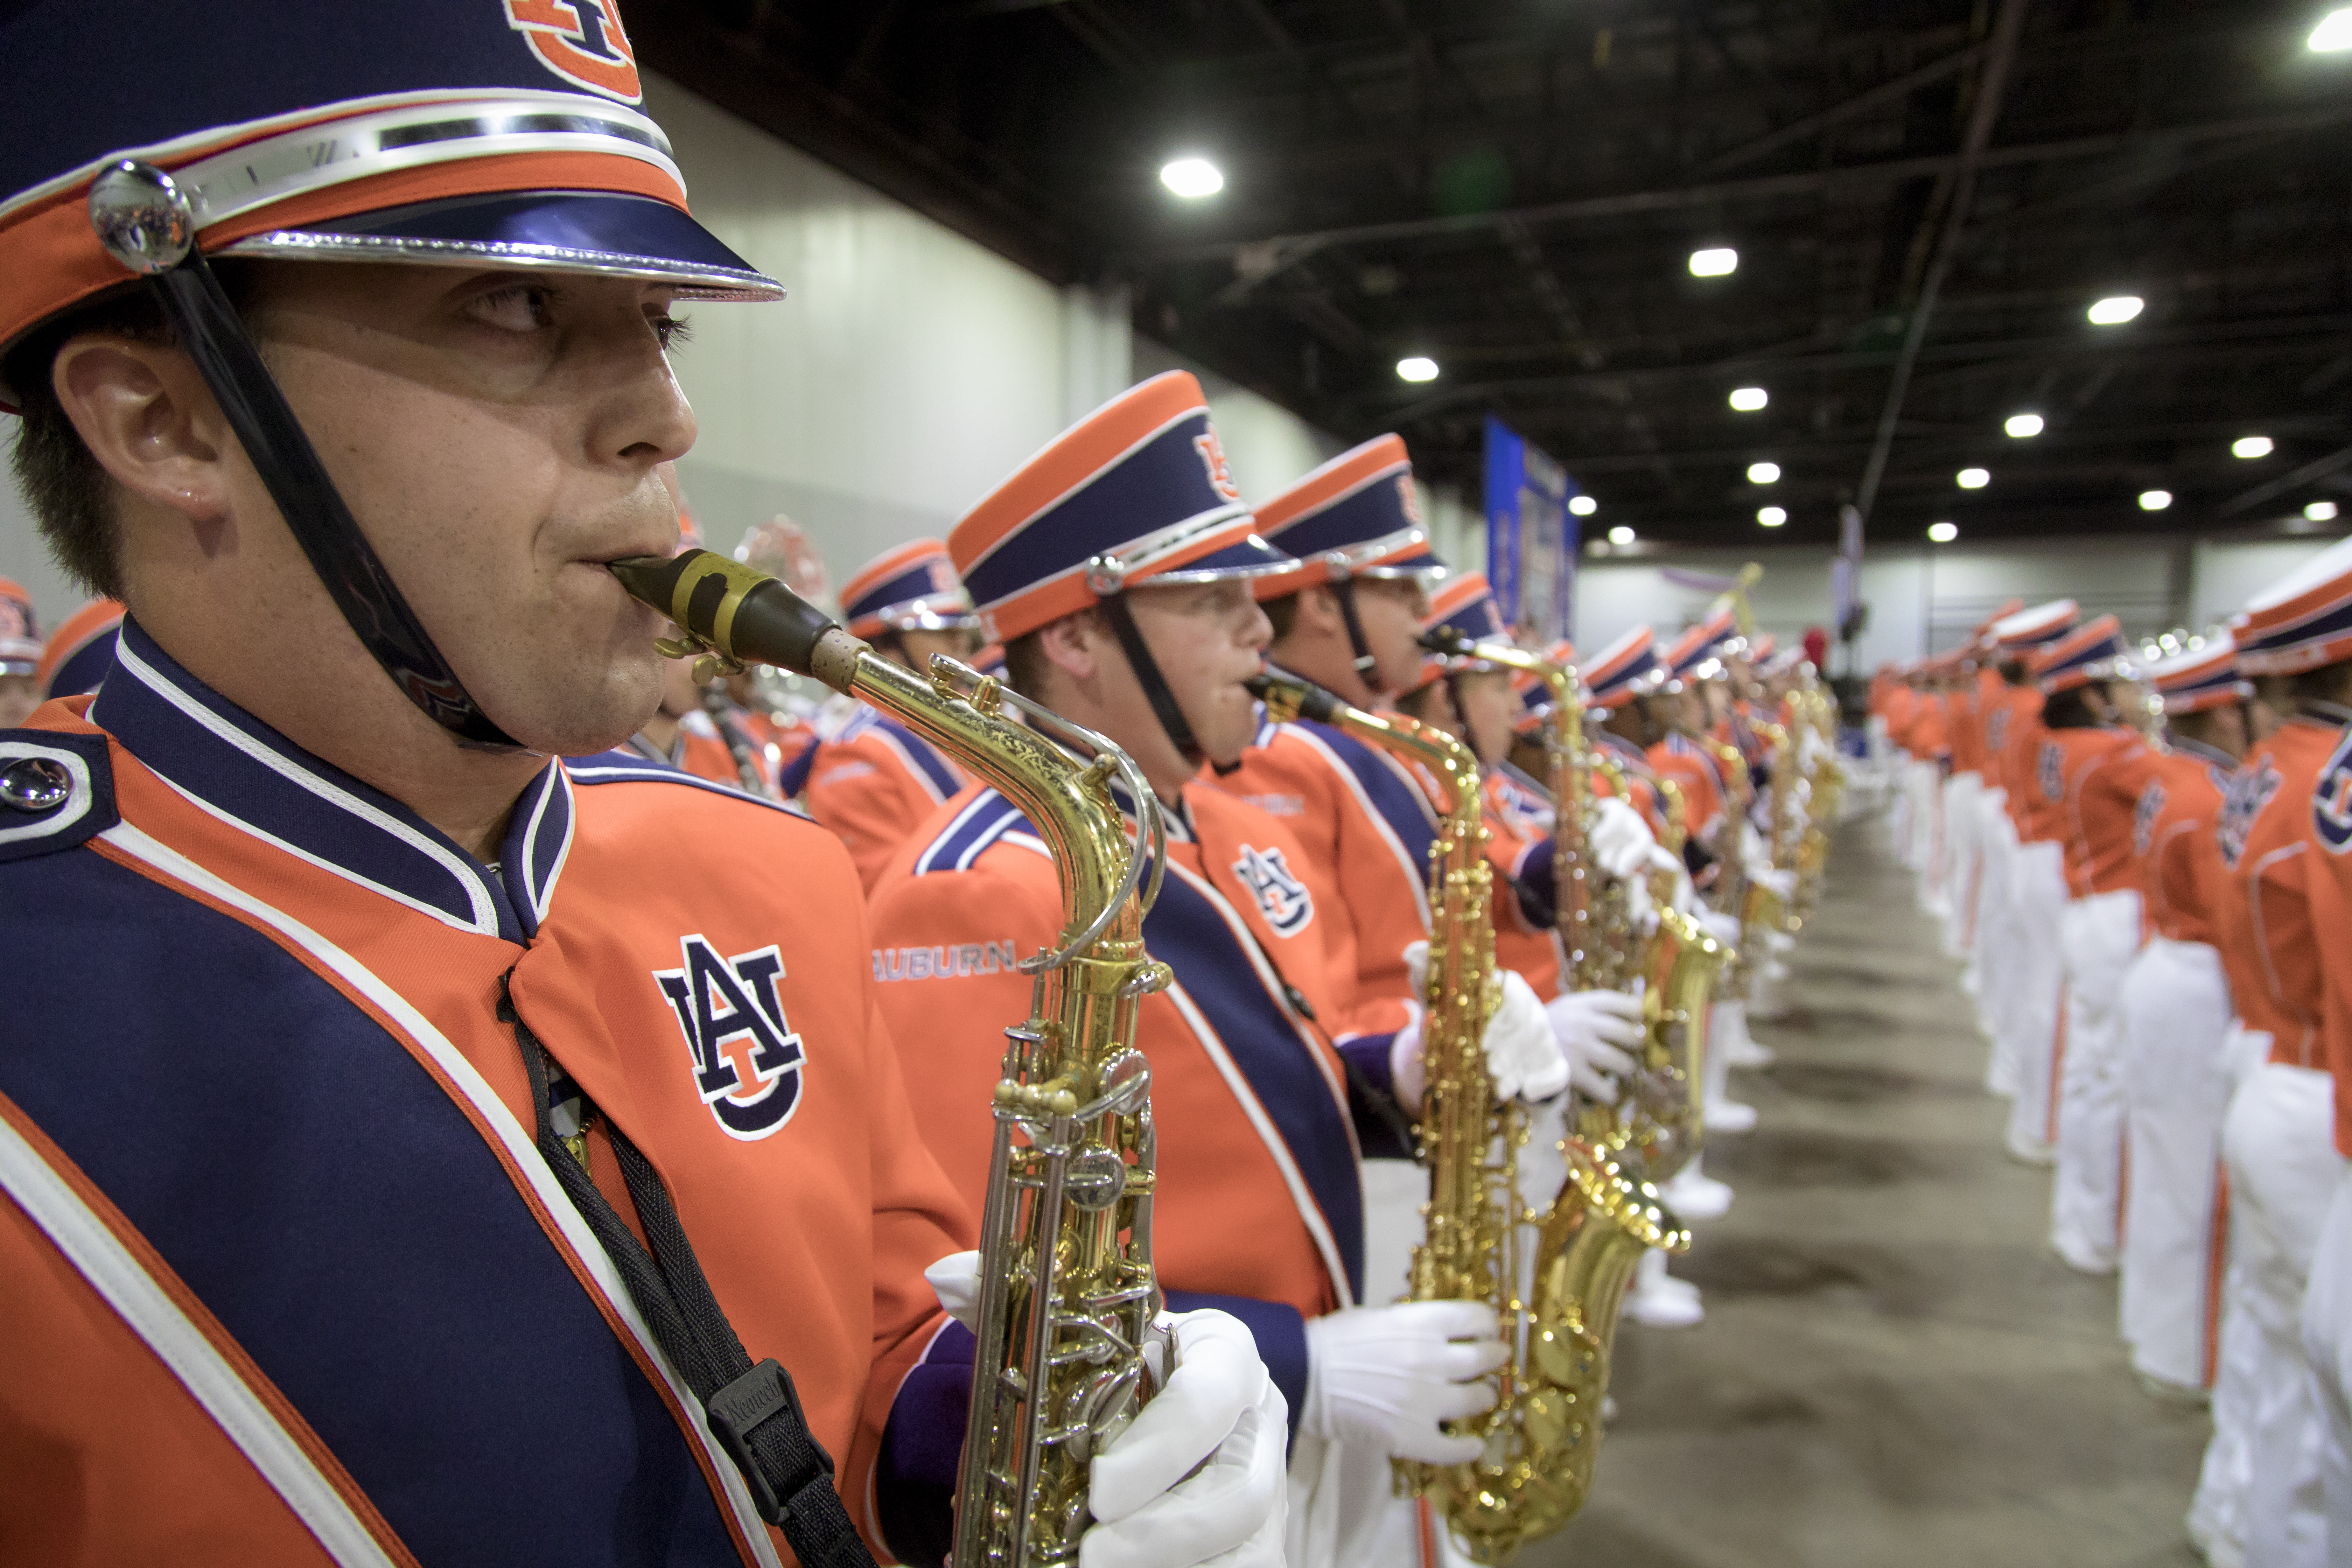 New Auburn Marching Band Uniforms - Auburn Uniform Database